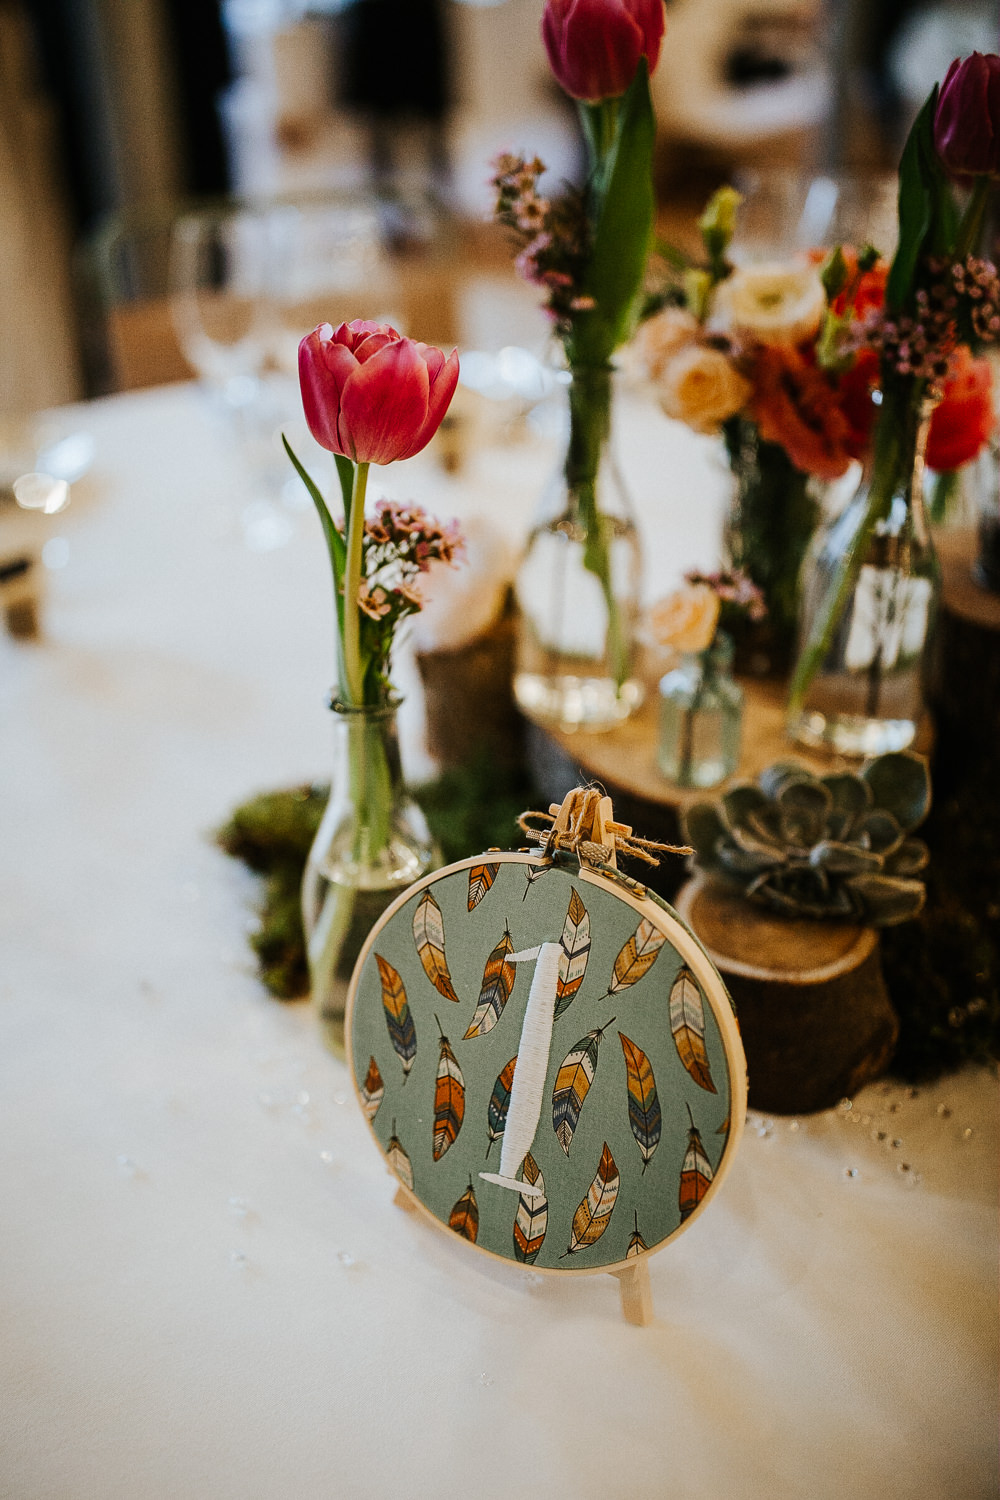 Embroidery Hoops Fabric Floral Table Number Holmes Mill Wedding Emilie May Photography